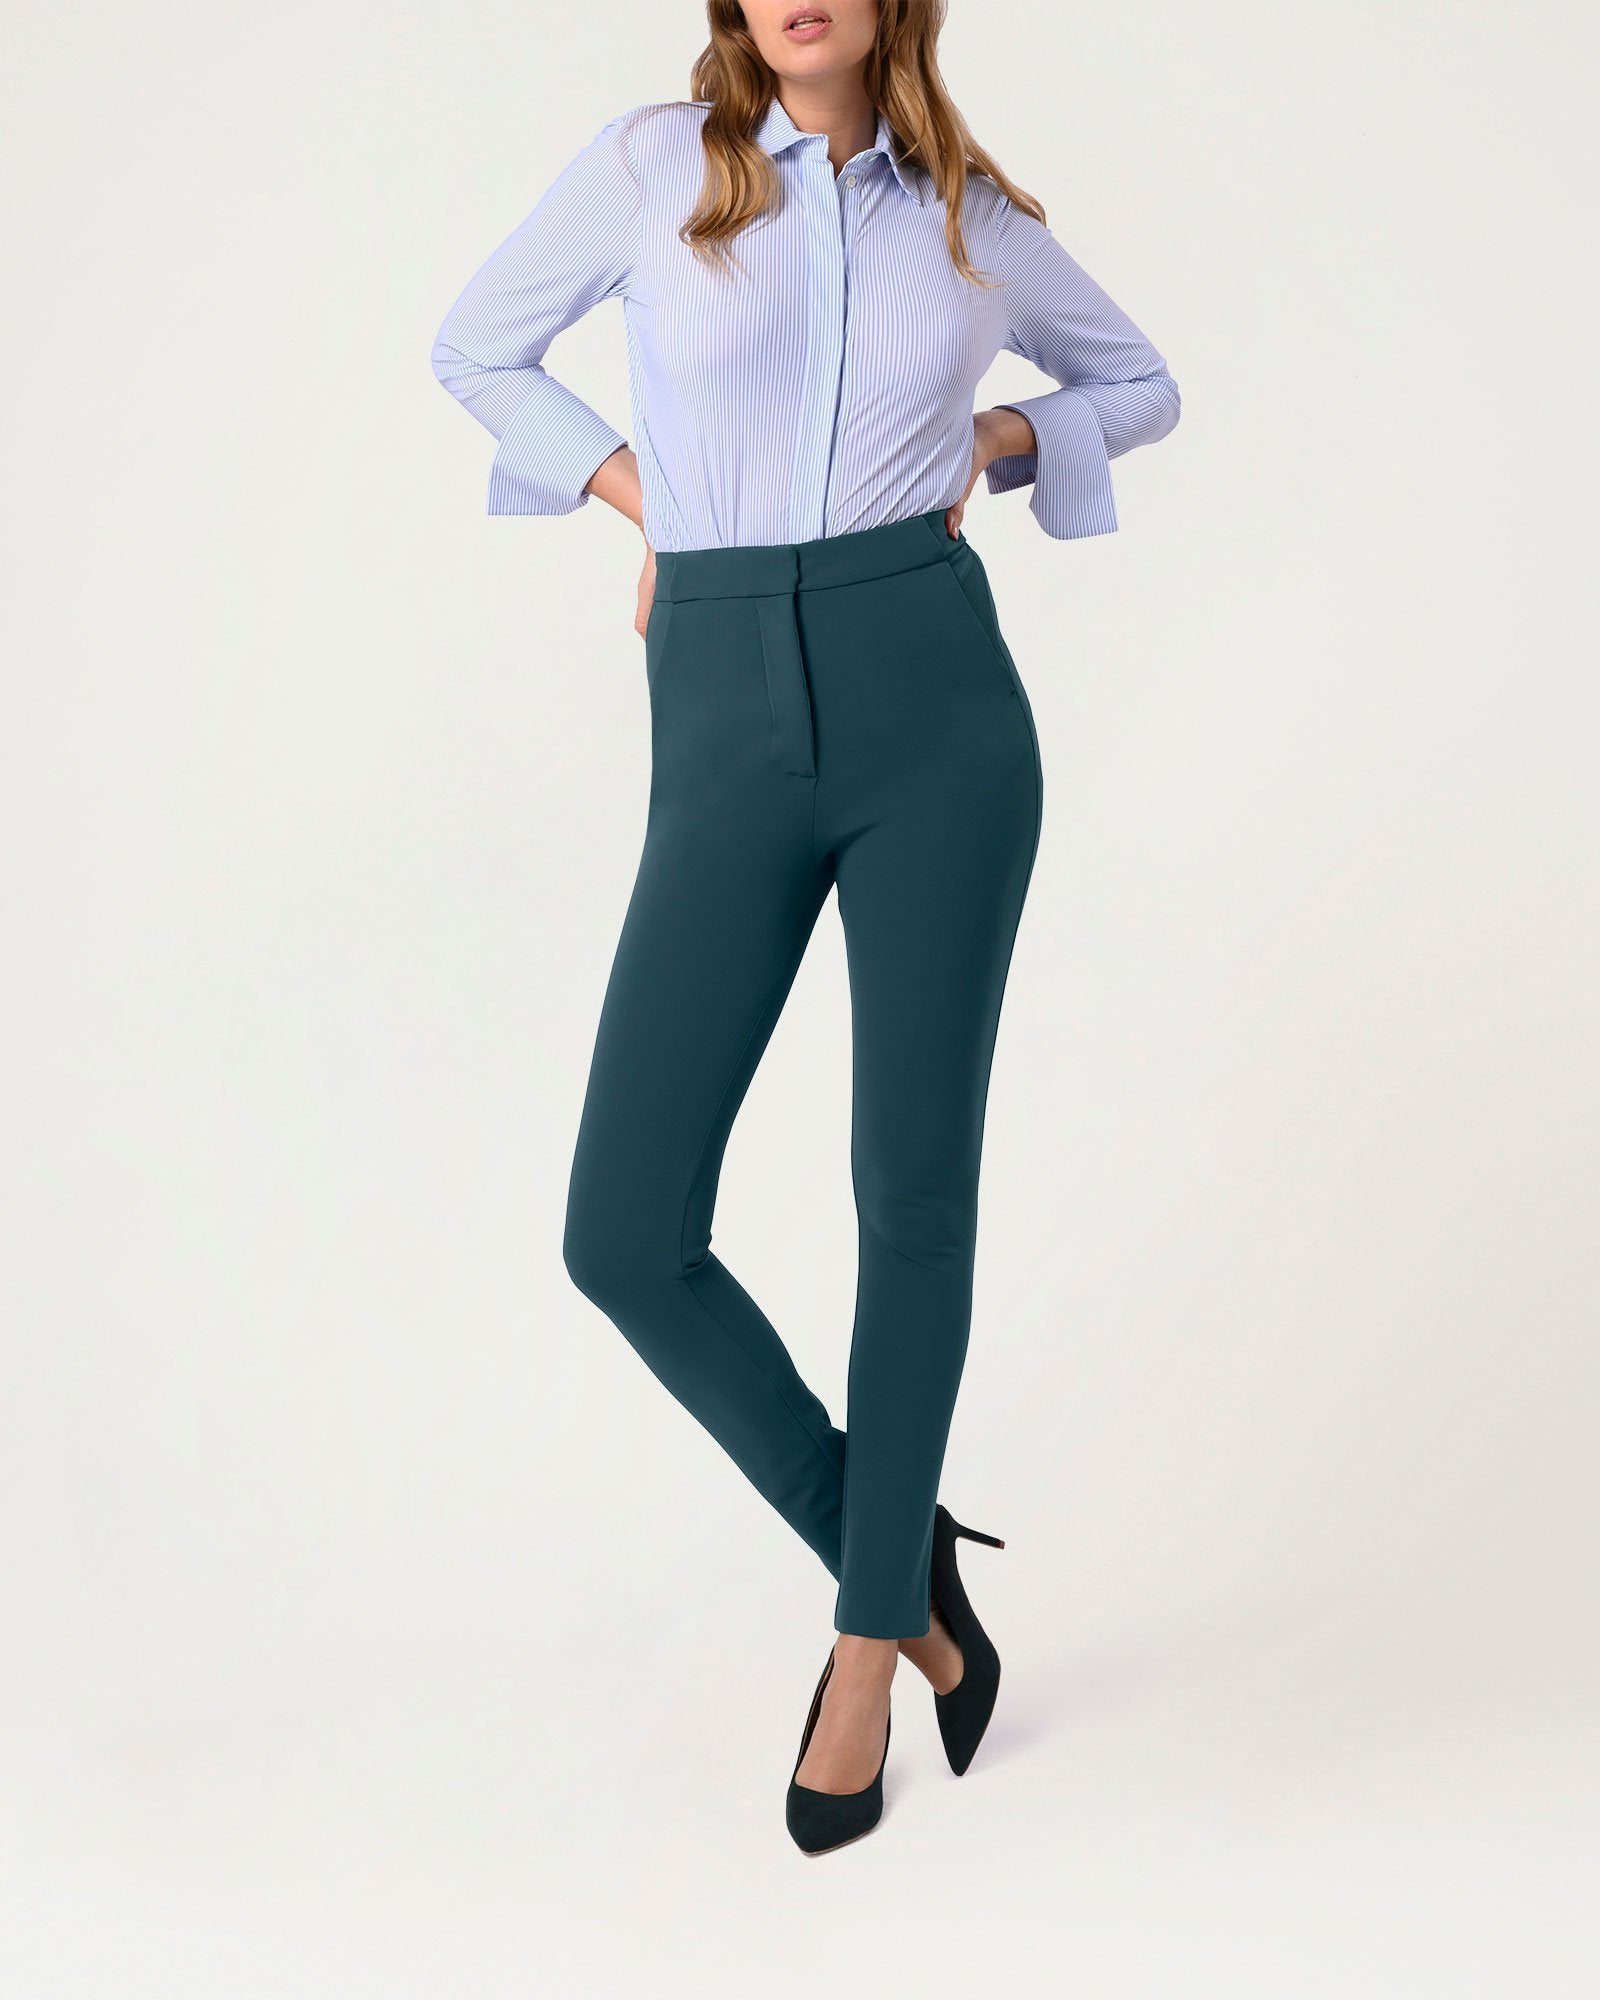 Power Move Pant Deep Seafoam 2.0